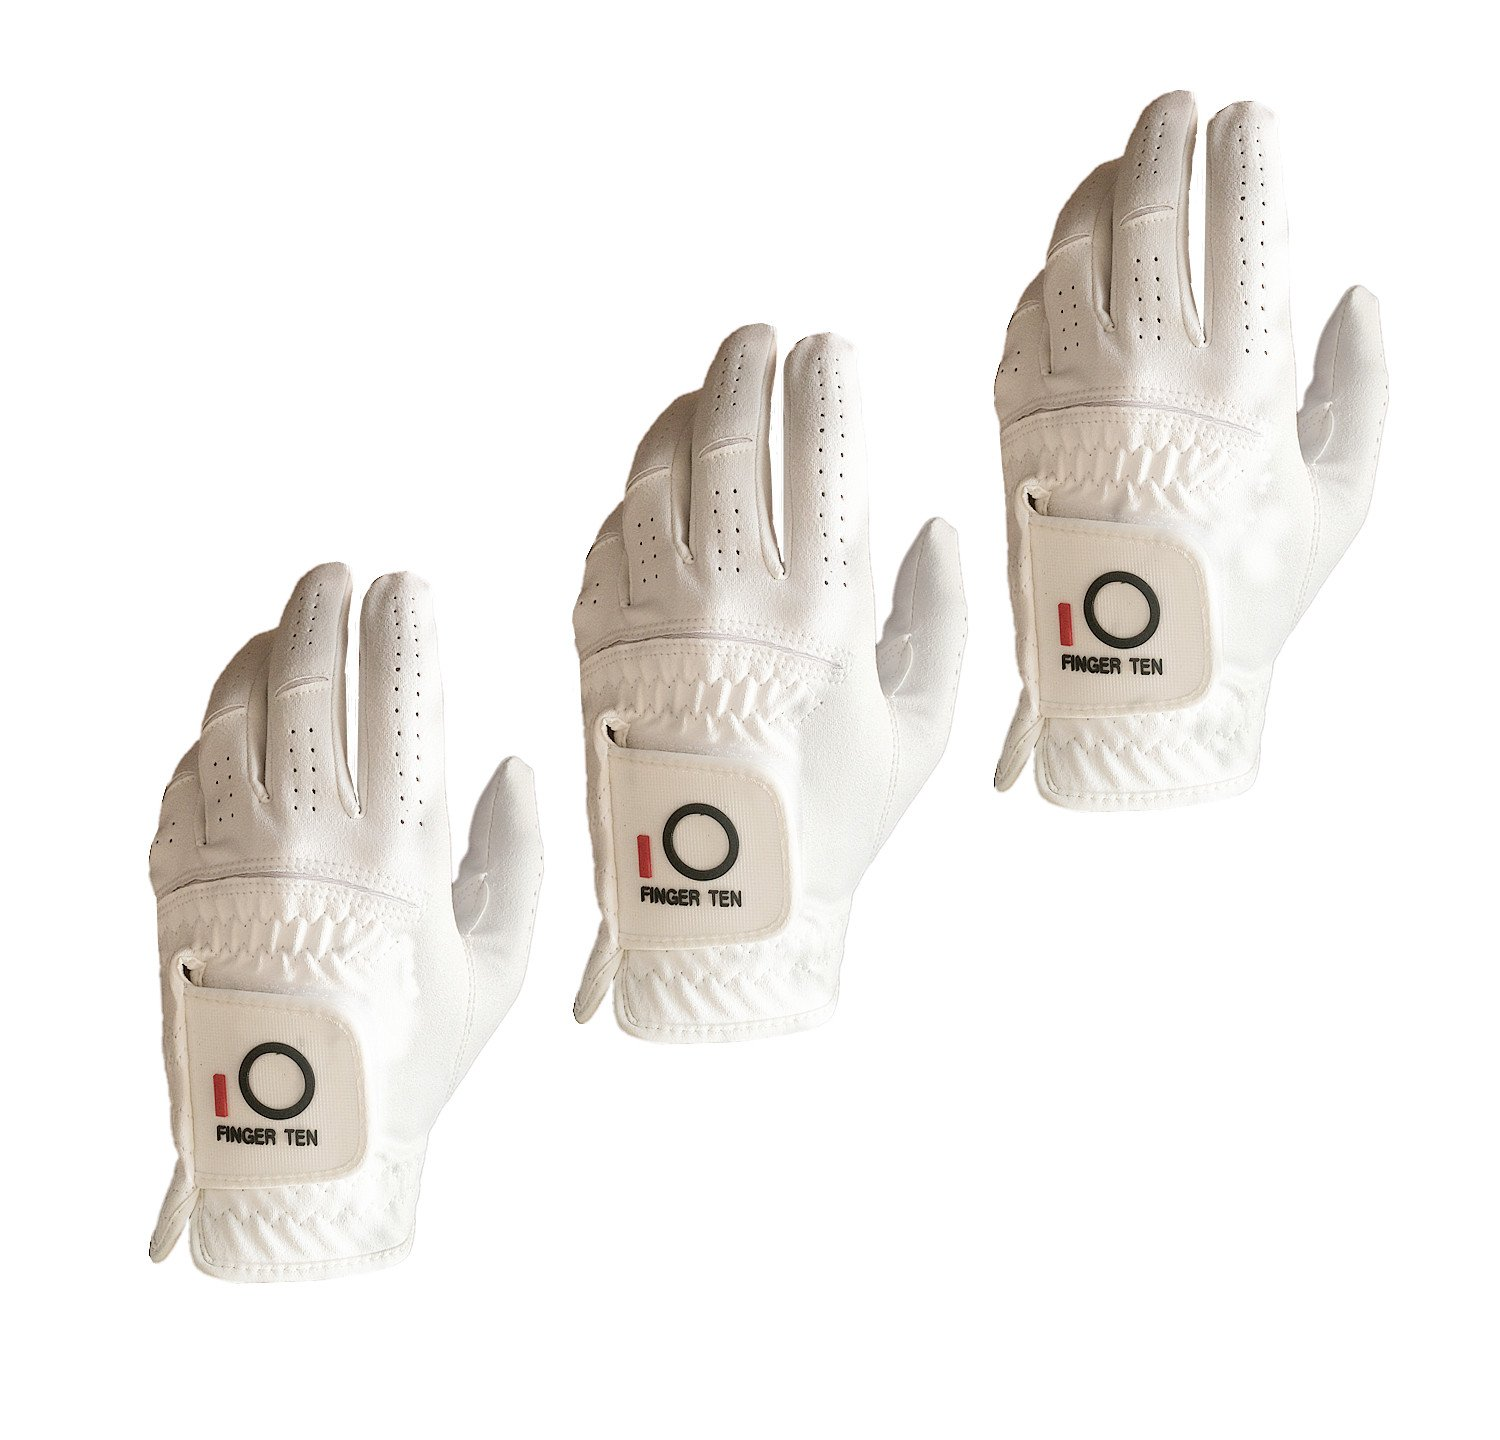 FINGER TEN Mens Golf Glove Rain Grip Value 3 Pack, Black White Left Hand Fit Right Handed Golfer, All Weather Durable Grip Size Small Medium Large XL (White, Small)